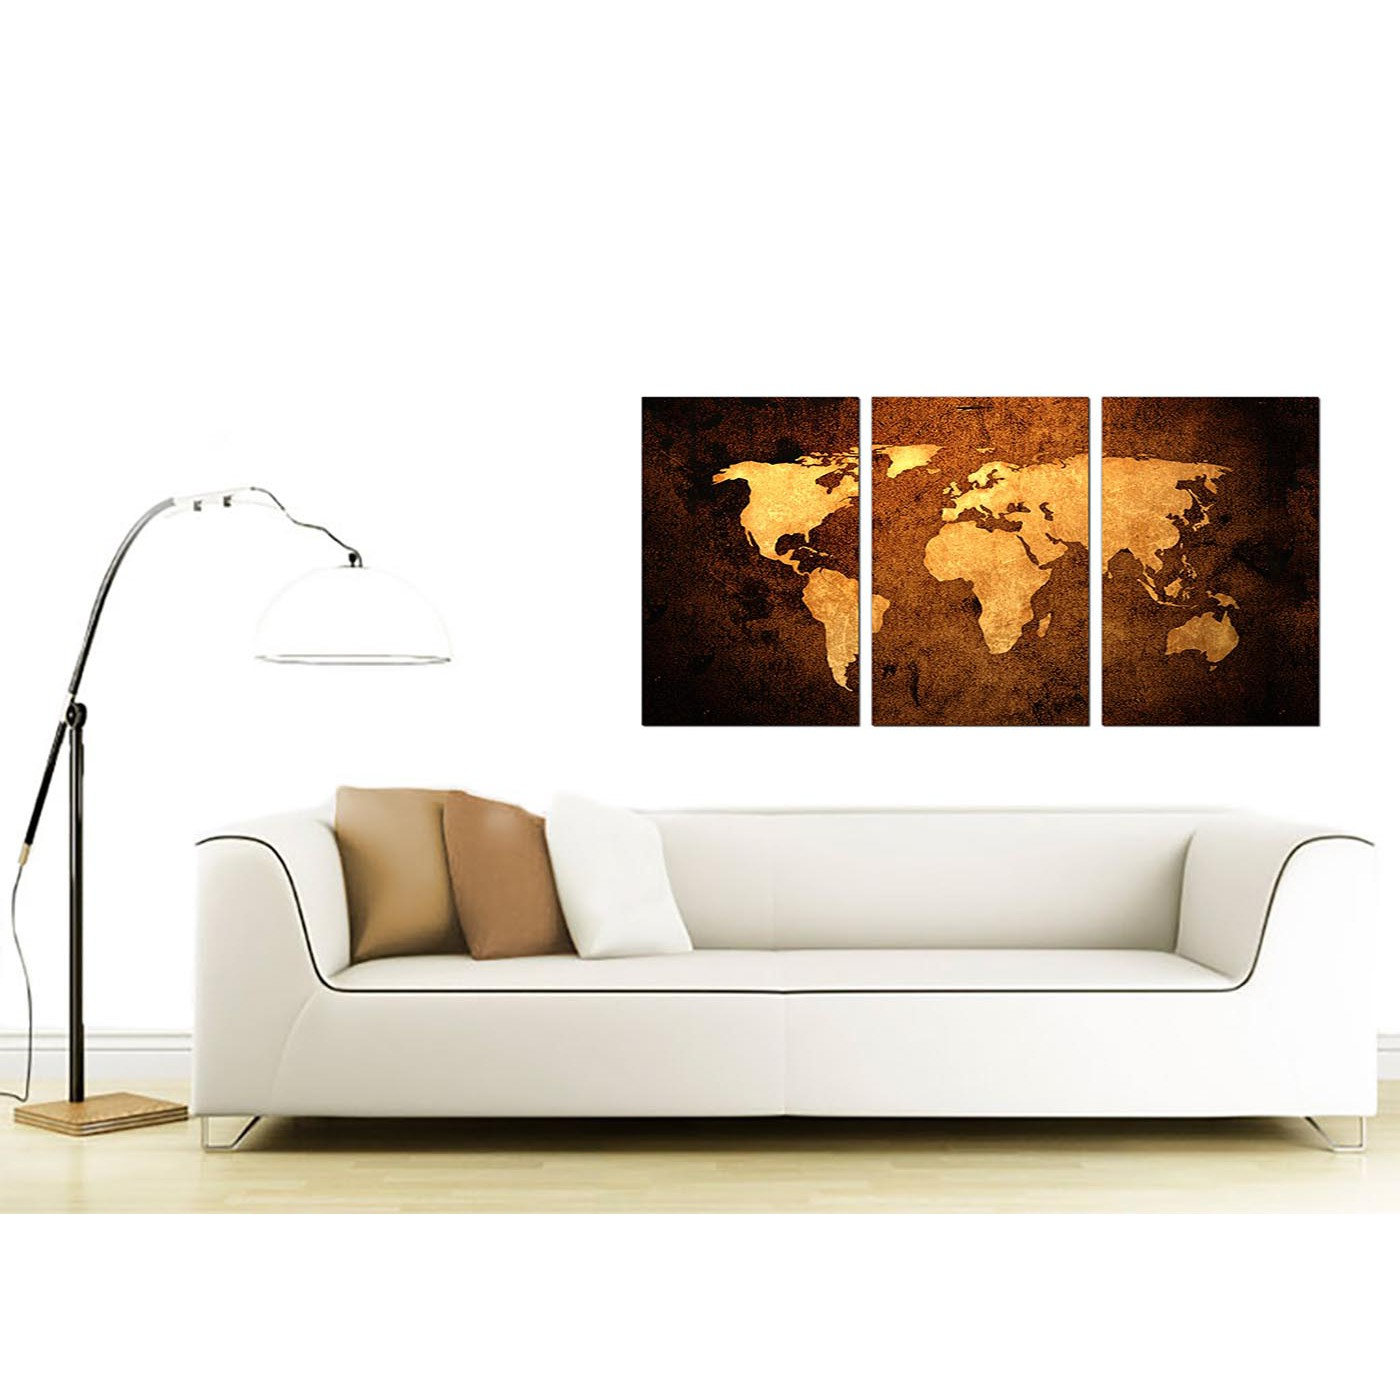 World map canvas wall art set of 3 for your bedroom display gallery item 4 3 panel world map canvas wall art 125cm x 60cm 3188 display gallery item 5 gumiabroncs Images